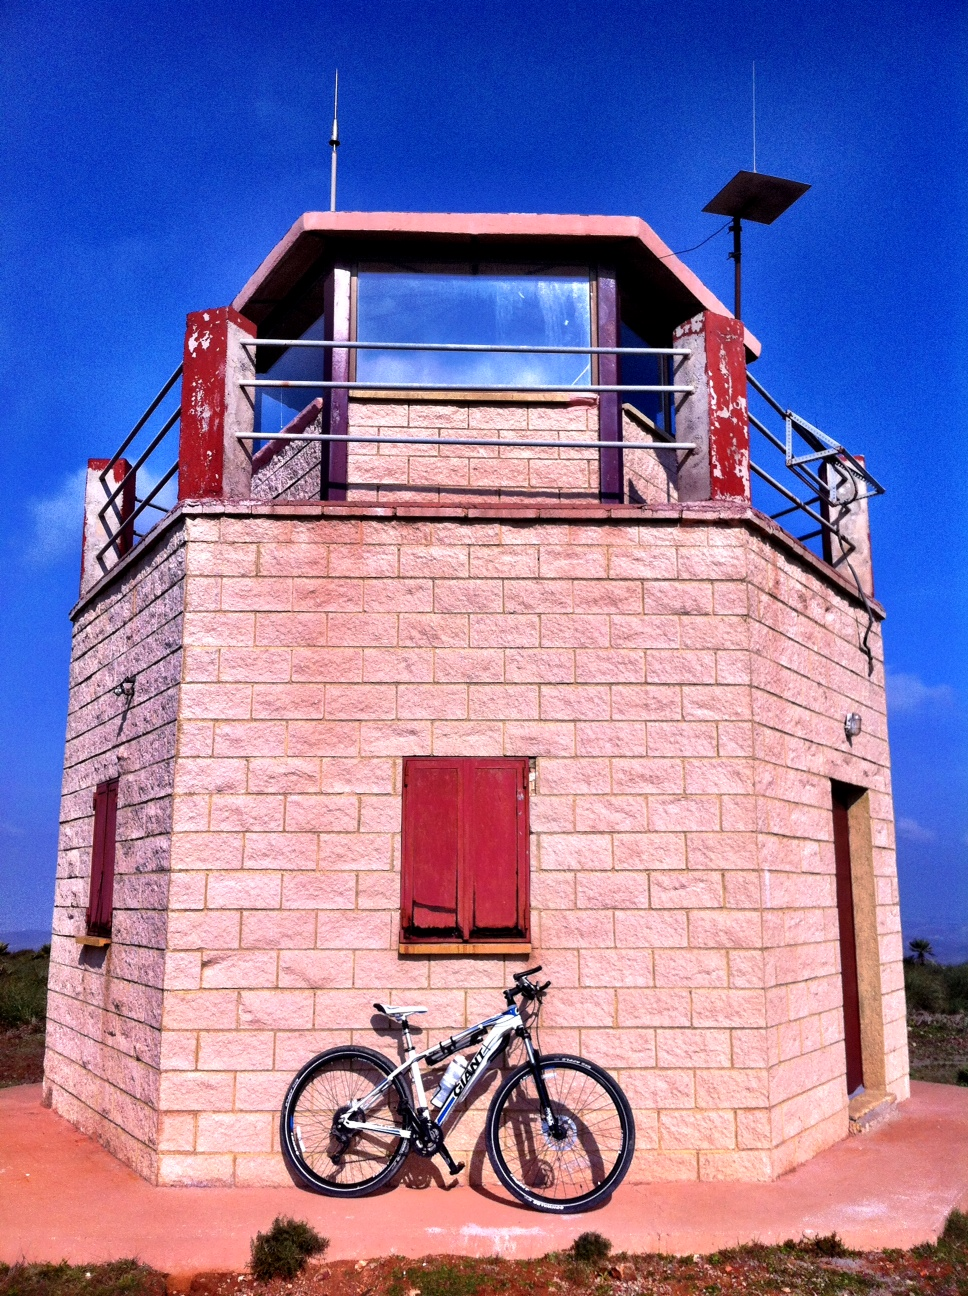 Large lookout tower believed to be used for hunting purposes, sited on top of the Cerro Rellano, Cabo de Gata, Spain